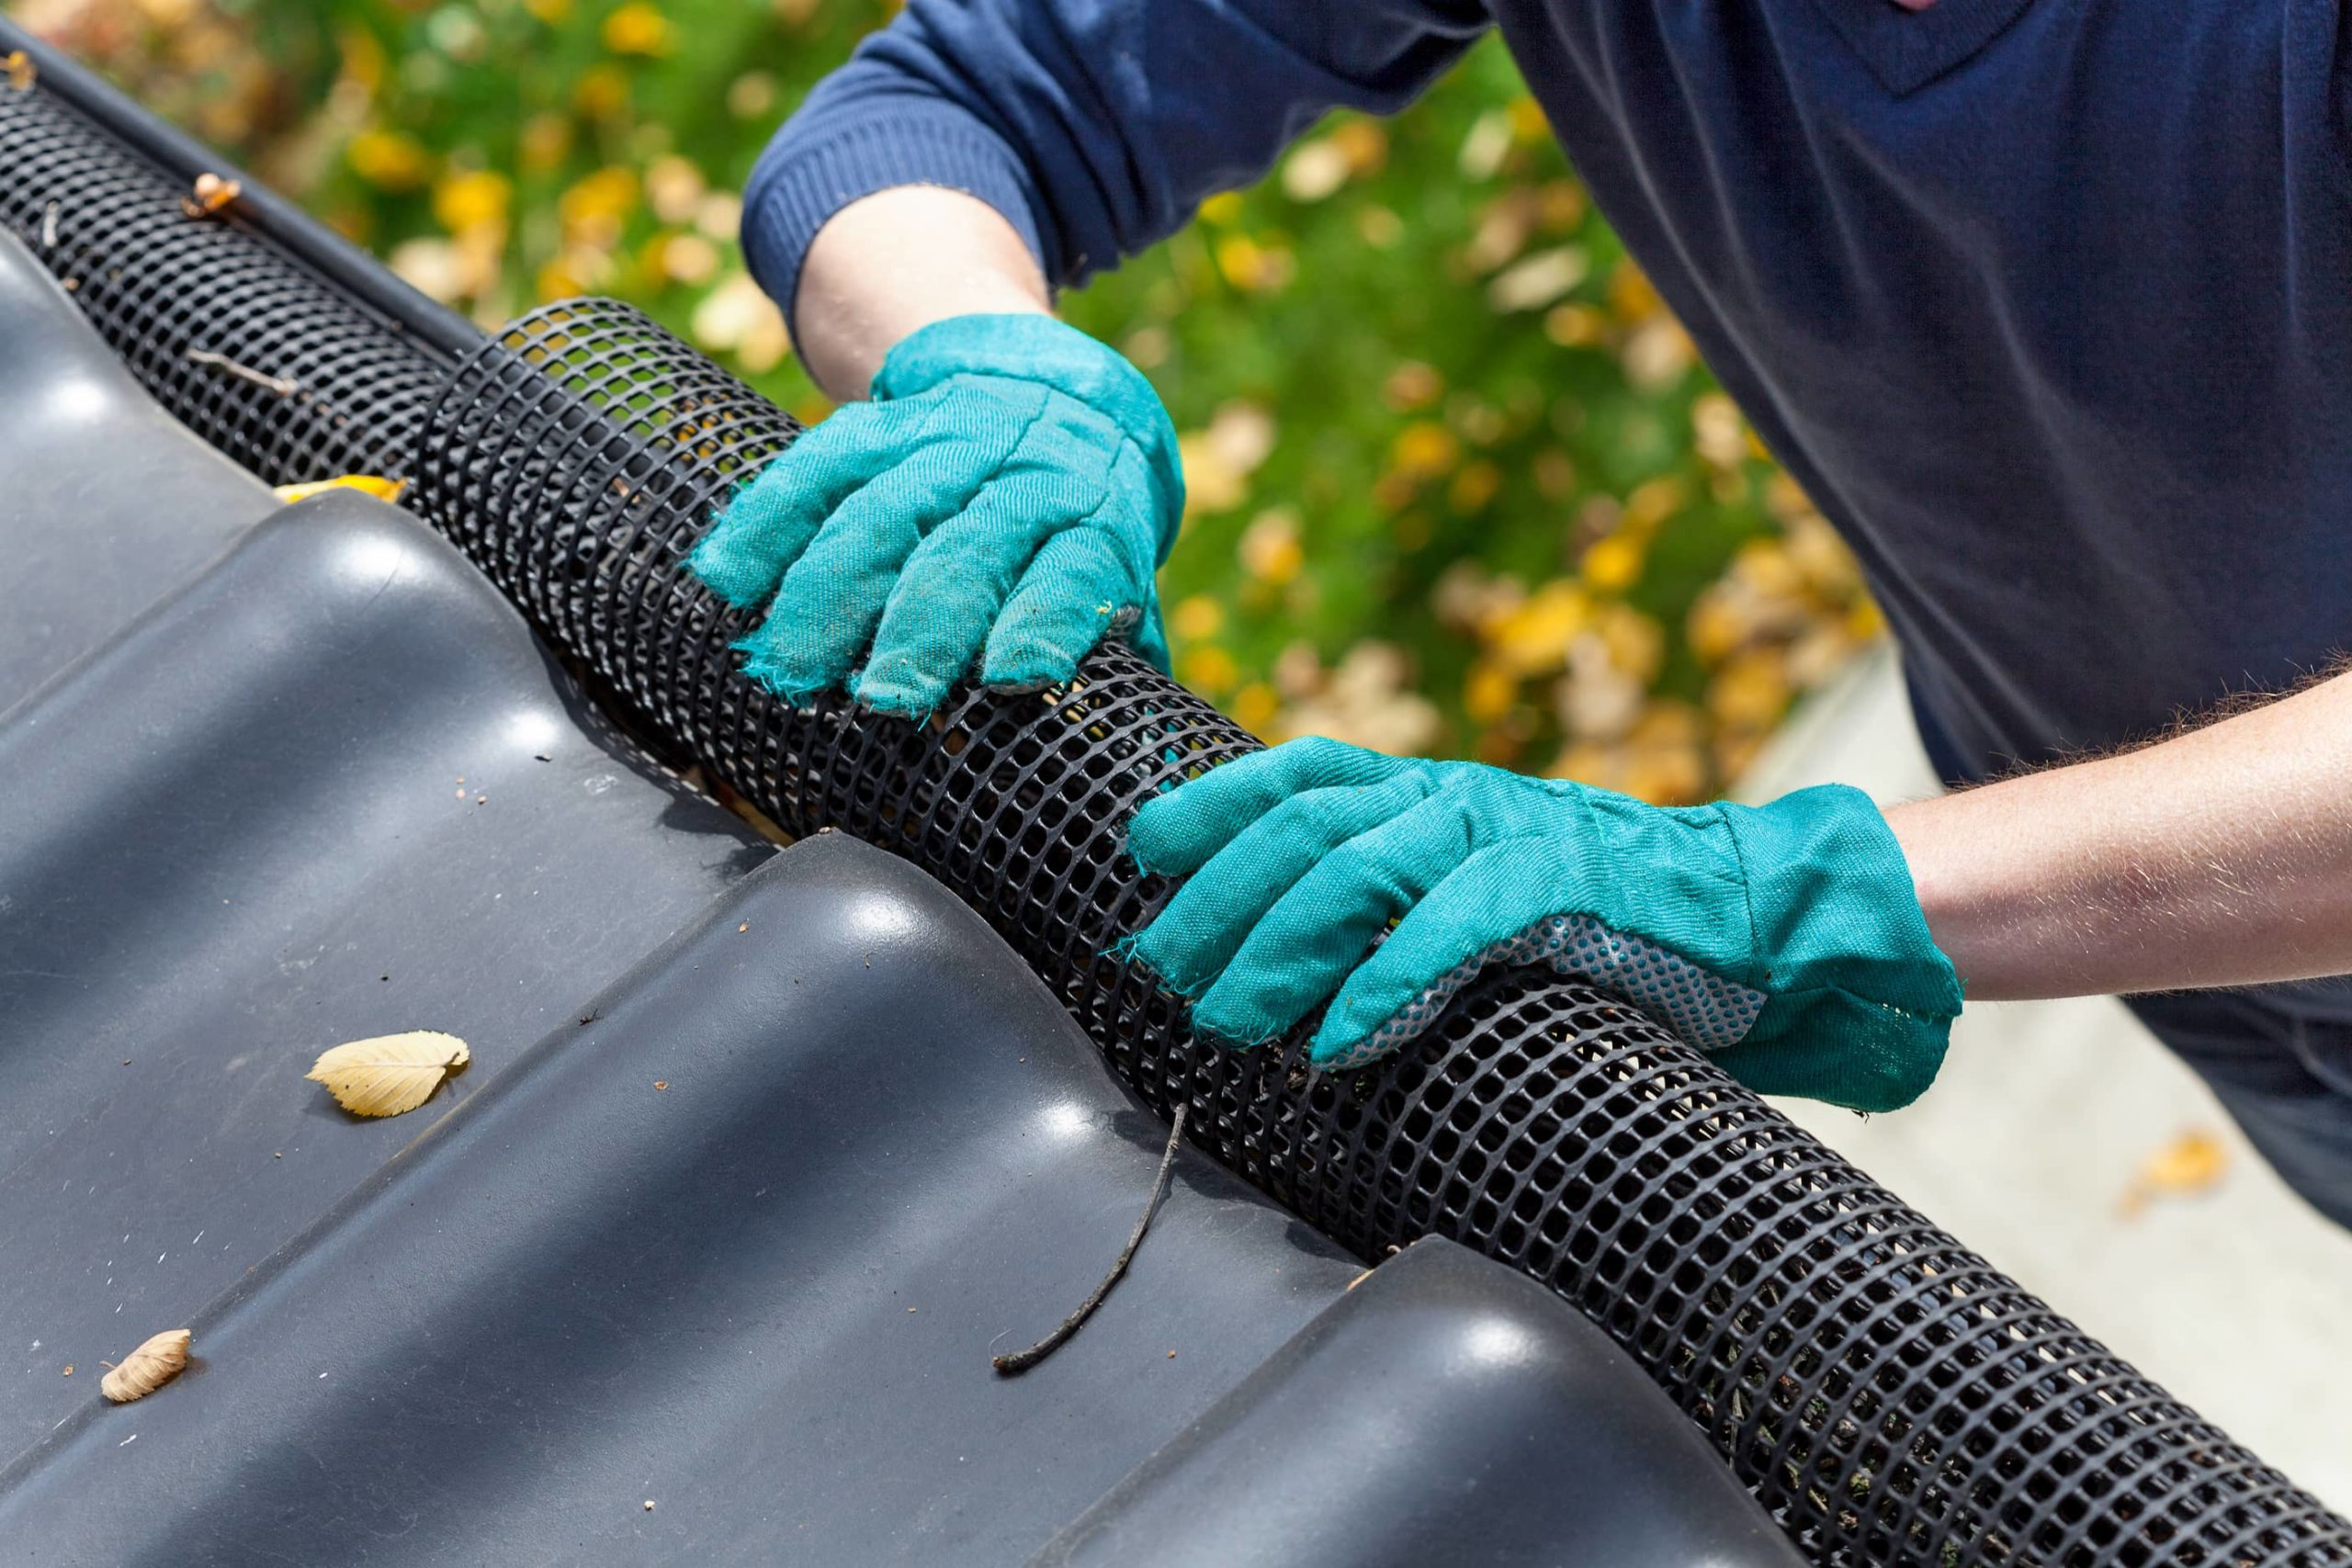 This is an image of a roofing contractor installing a gutter guard to prevent debris clogging.